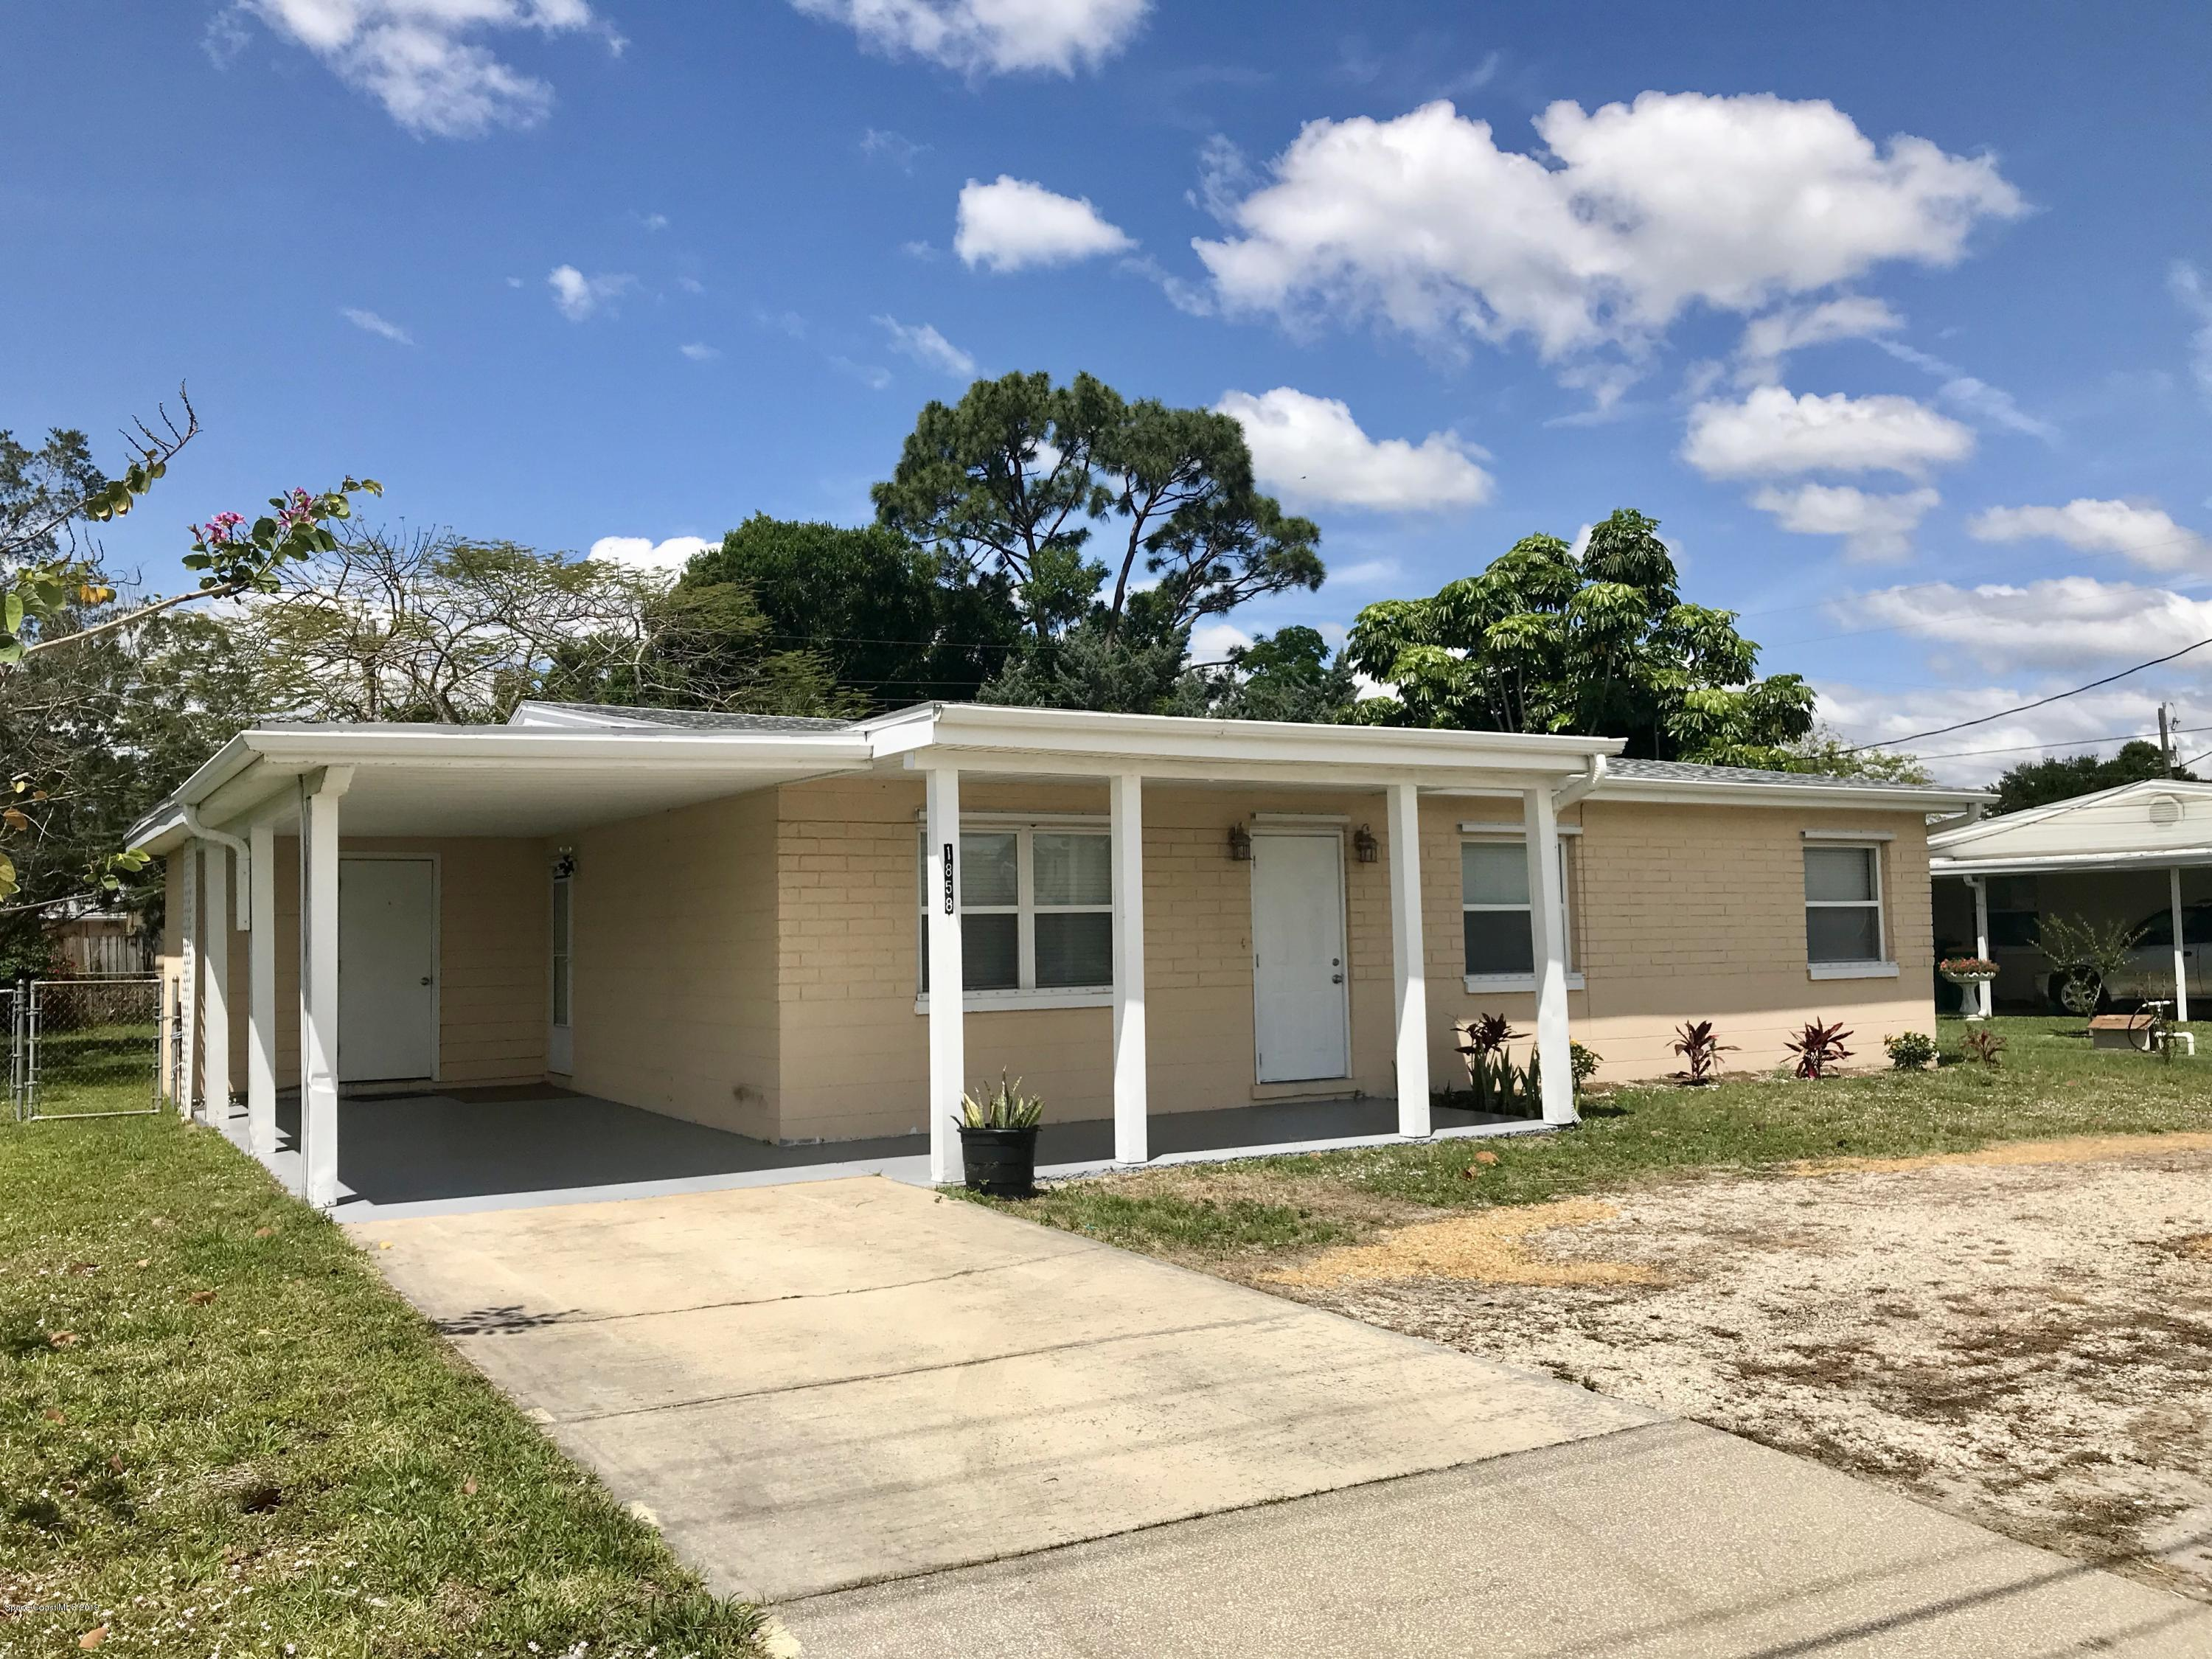 Single Family Home for Sale at 1858 Croton 1858 Croton Melbourne, Florida 32935 United States